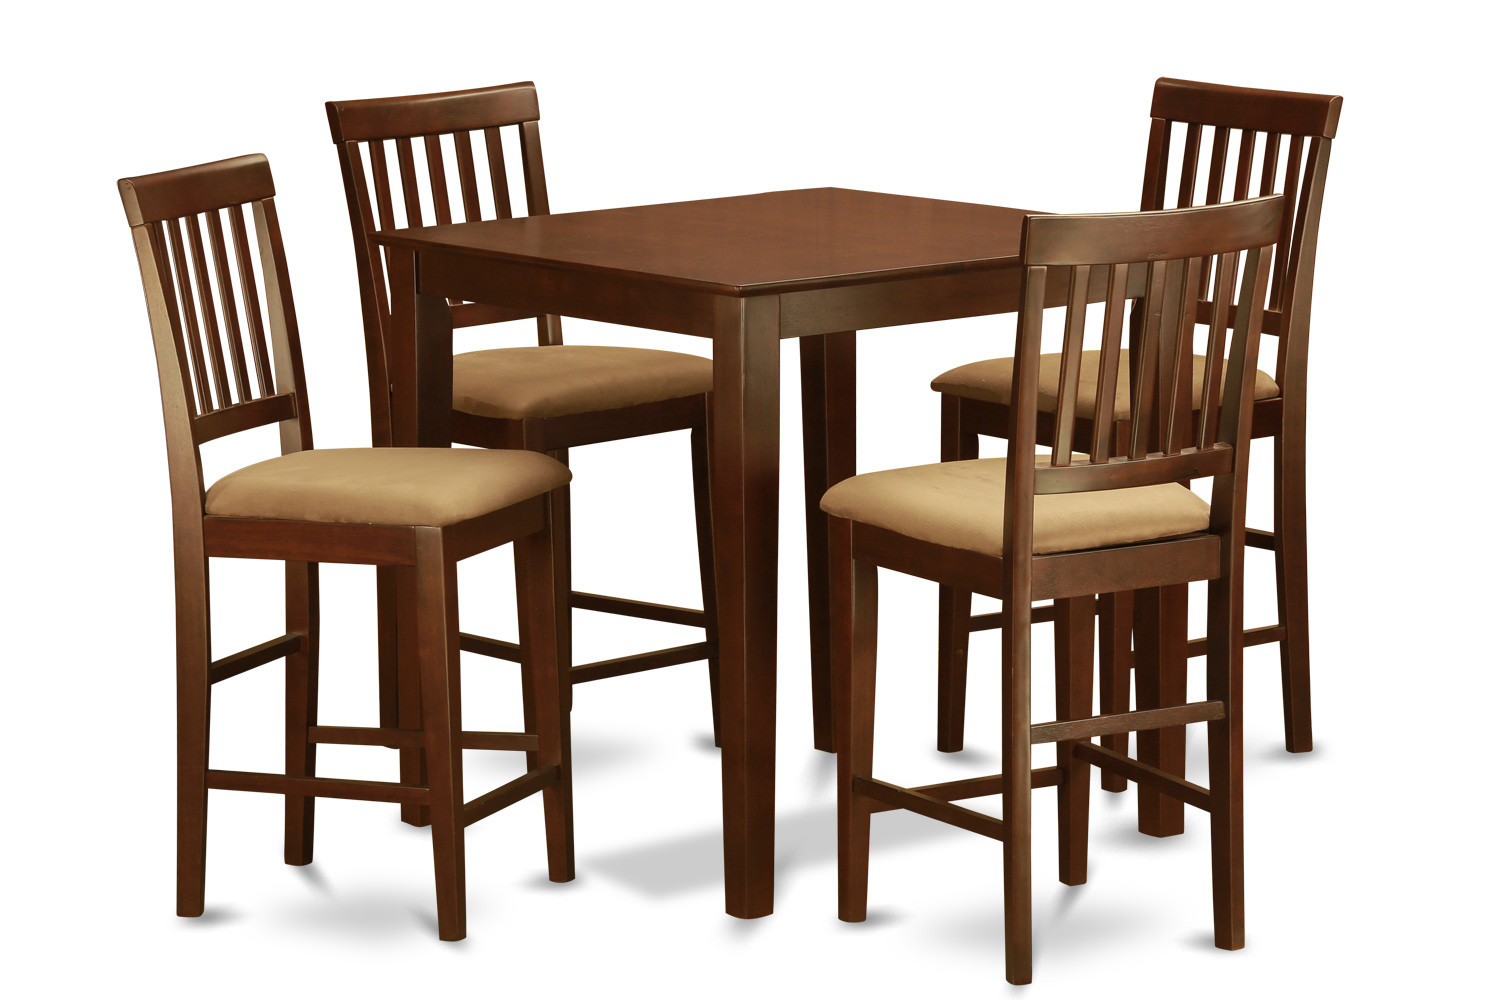 Best ideas about Tall Dining Table . Save or Pin 5 Piece Counter Height Table Set Table and 4 Kitchen Now.